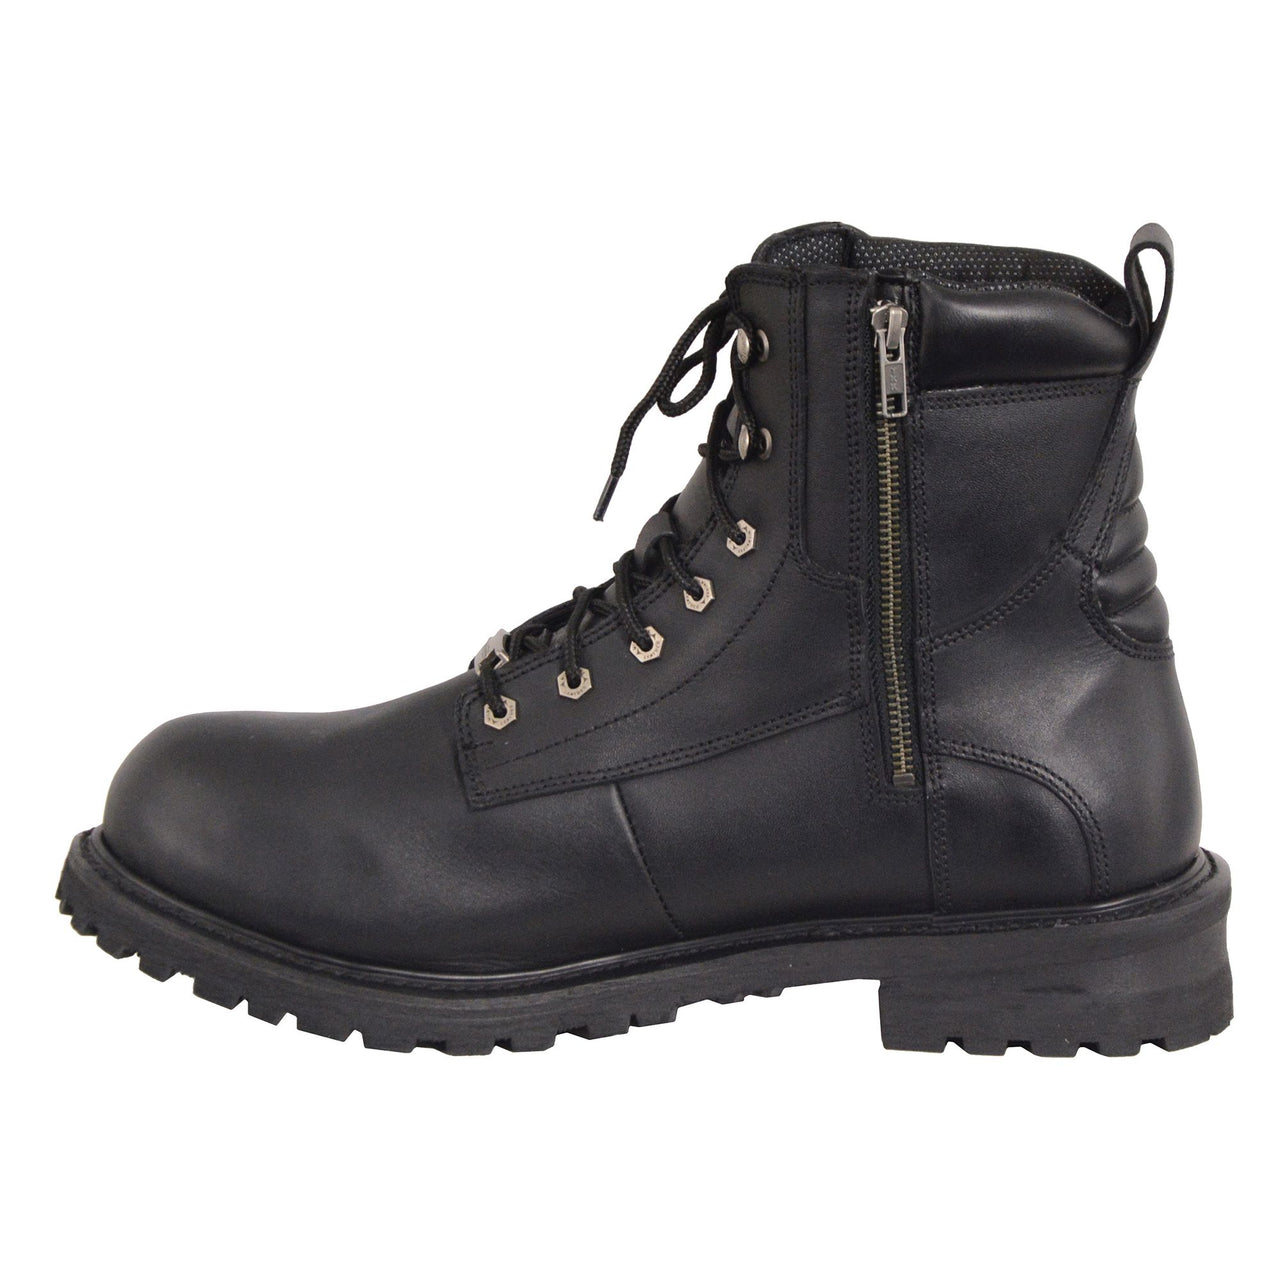 Men's 6 Inch Waterproof Lace to Toe Boot w/ Steel Toe - HighwayLeather